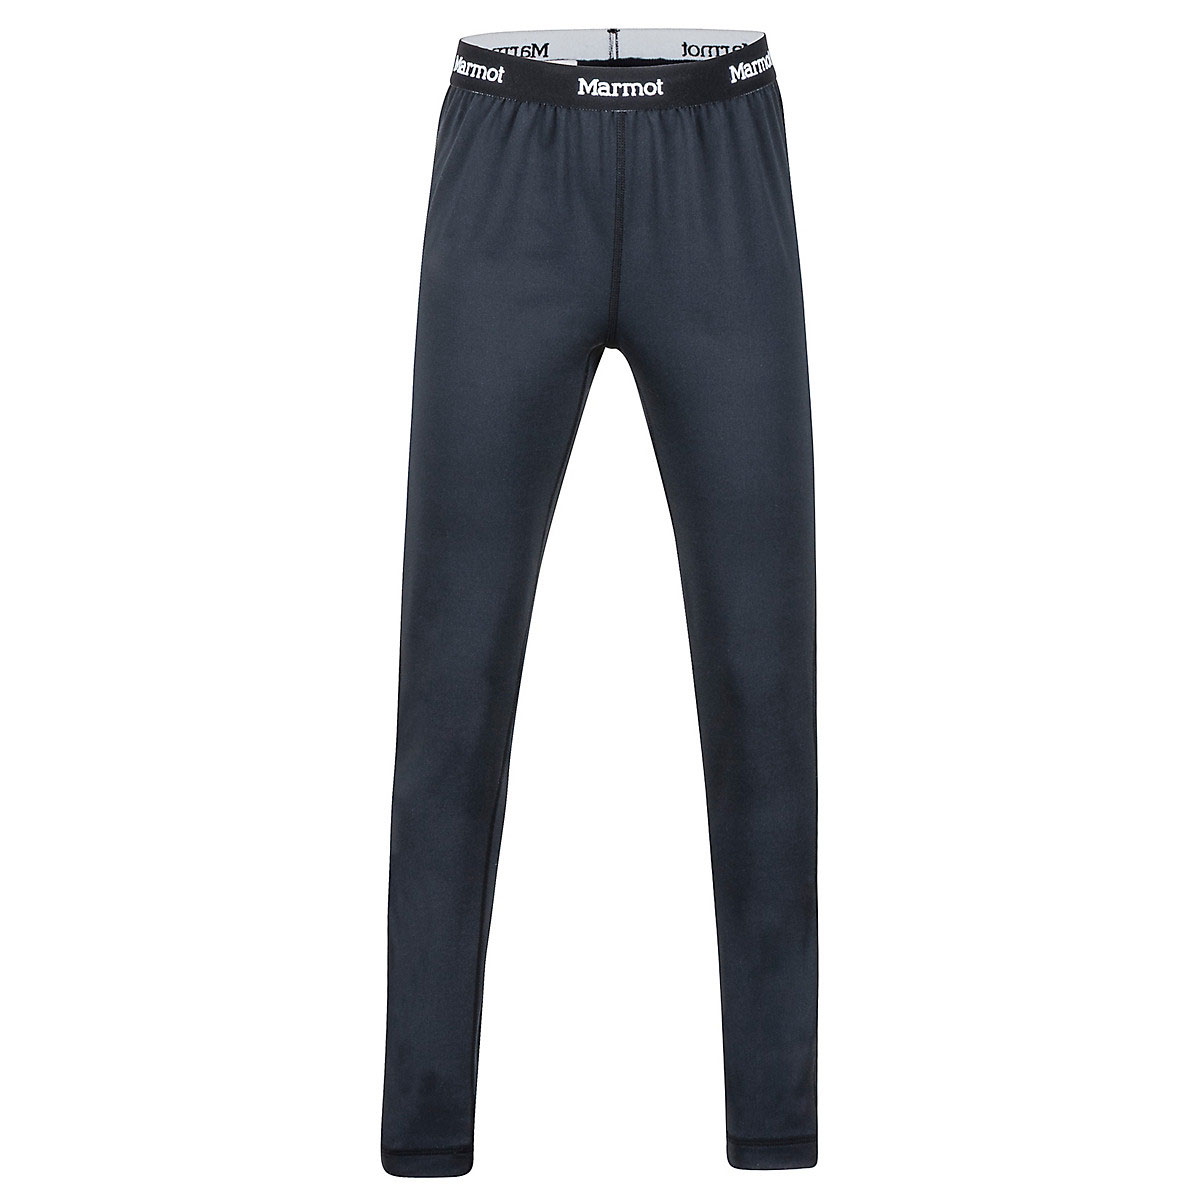 Marmot Boys' Midweight Harrier Tight in Black